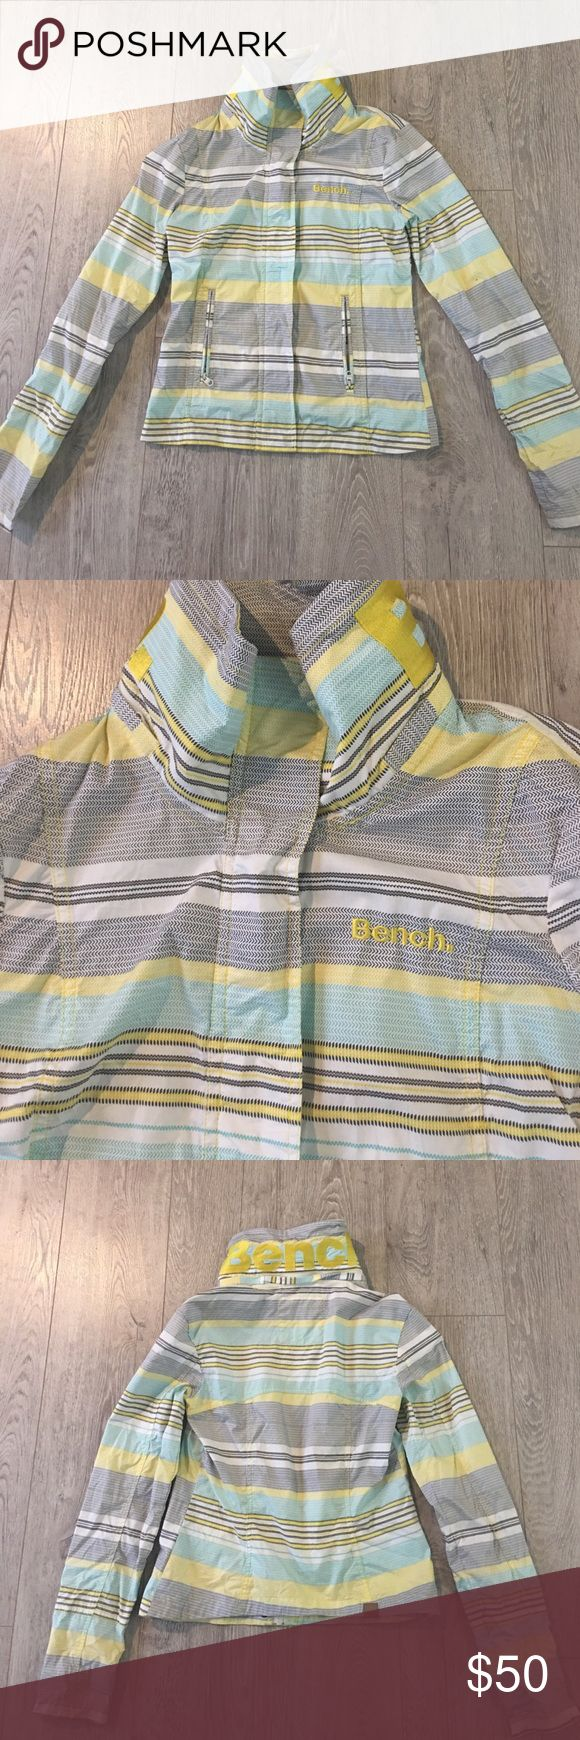 Bench jacket Yellow/mint/gray/white multi colored Bench jacket. Says bench on front and back collar. Optional hood that rolls up into the collar. Super condition. Size small. Bench Jackets & Coats